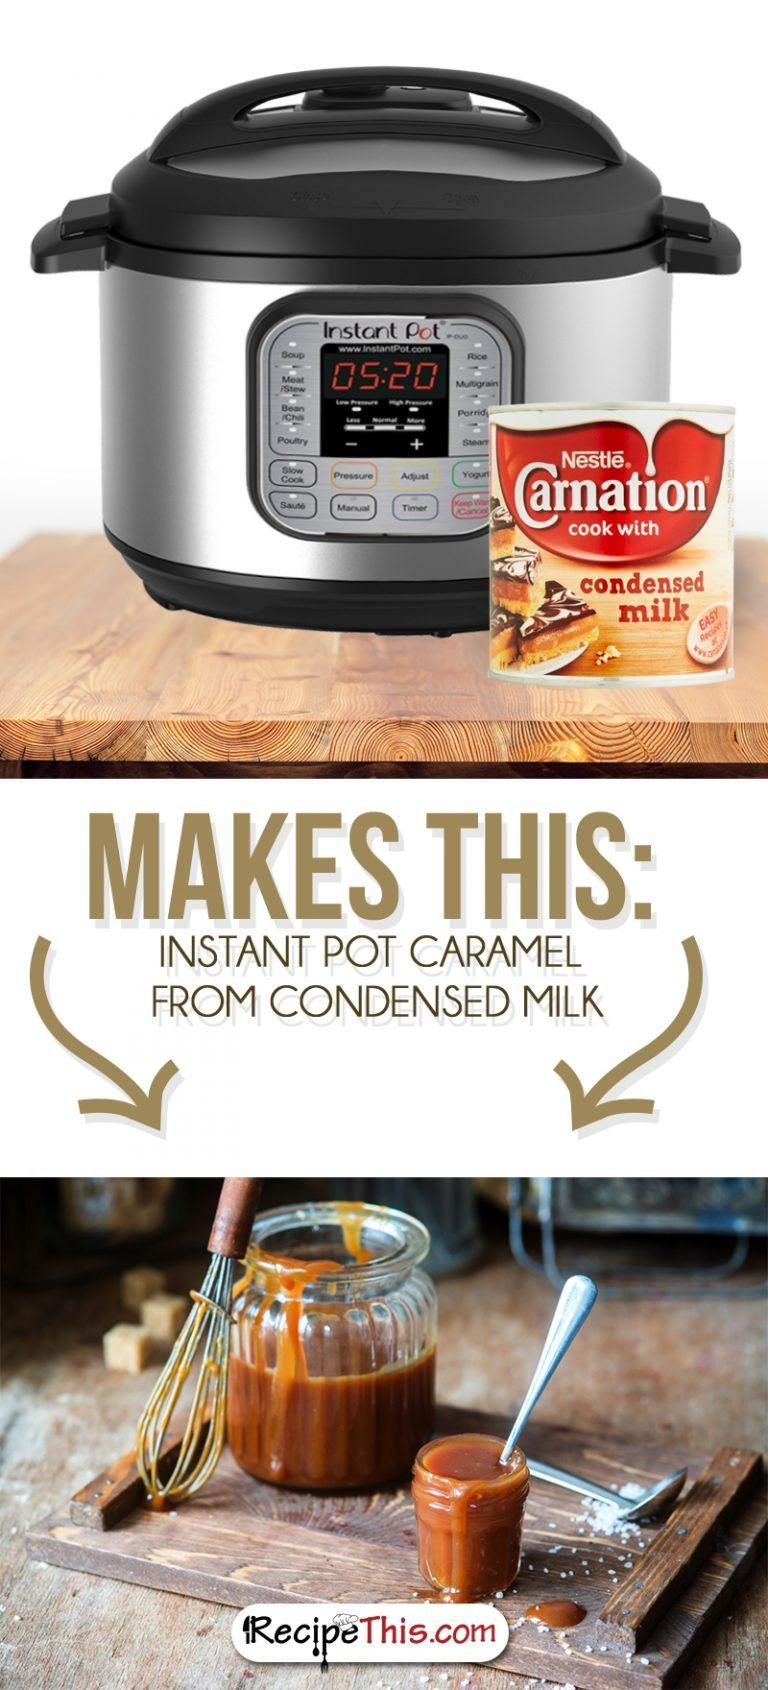 How to make instant pot caramel from condensed milk